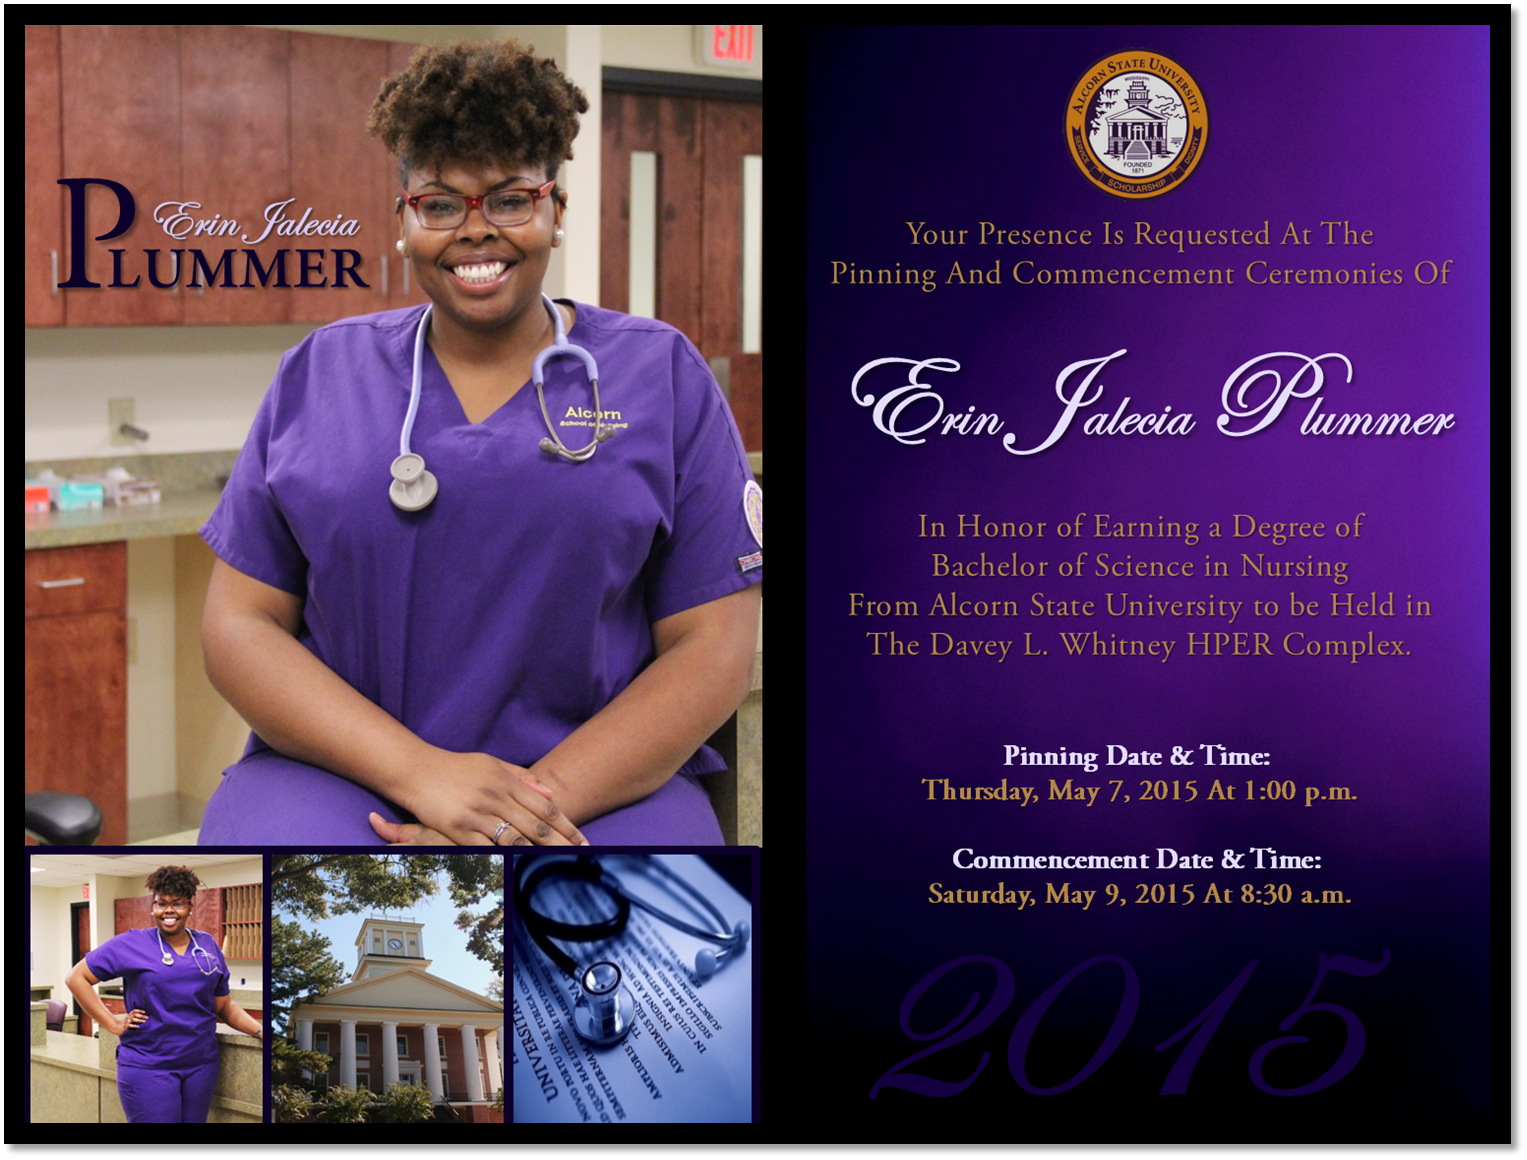 Erin Plummer. Official Graduation Invitation